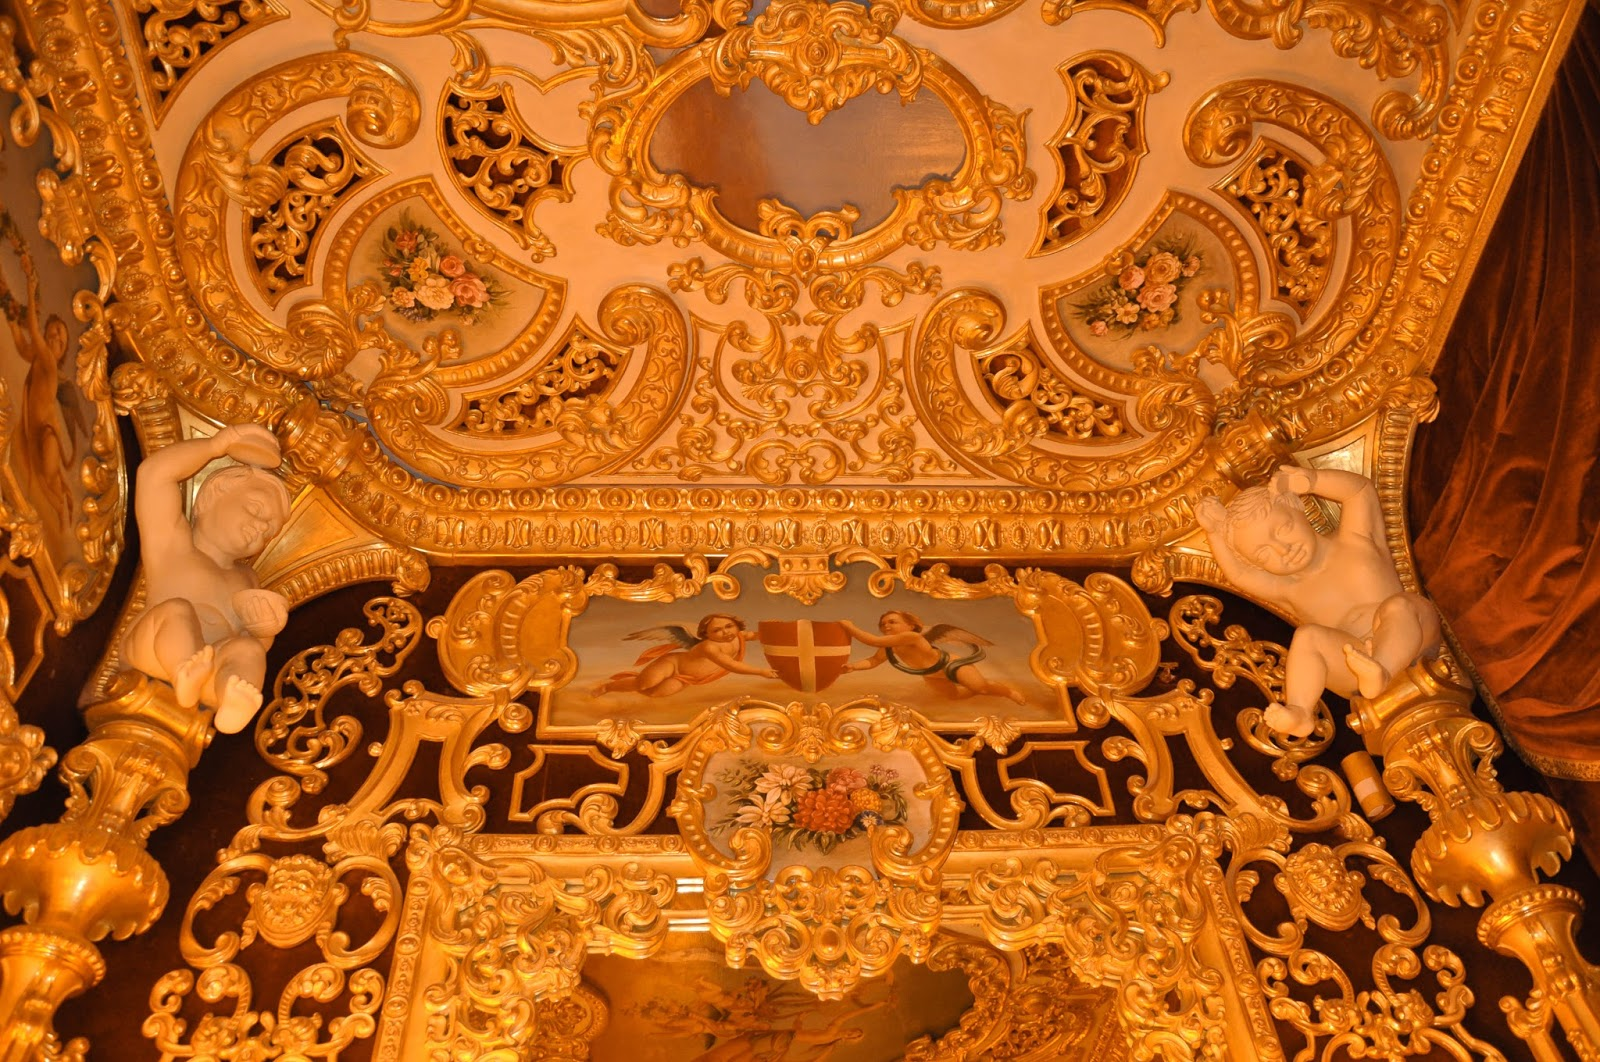 Above the mirror inside the royal box, La Fenice, Venice, Italy